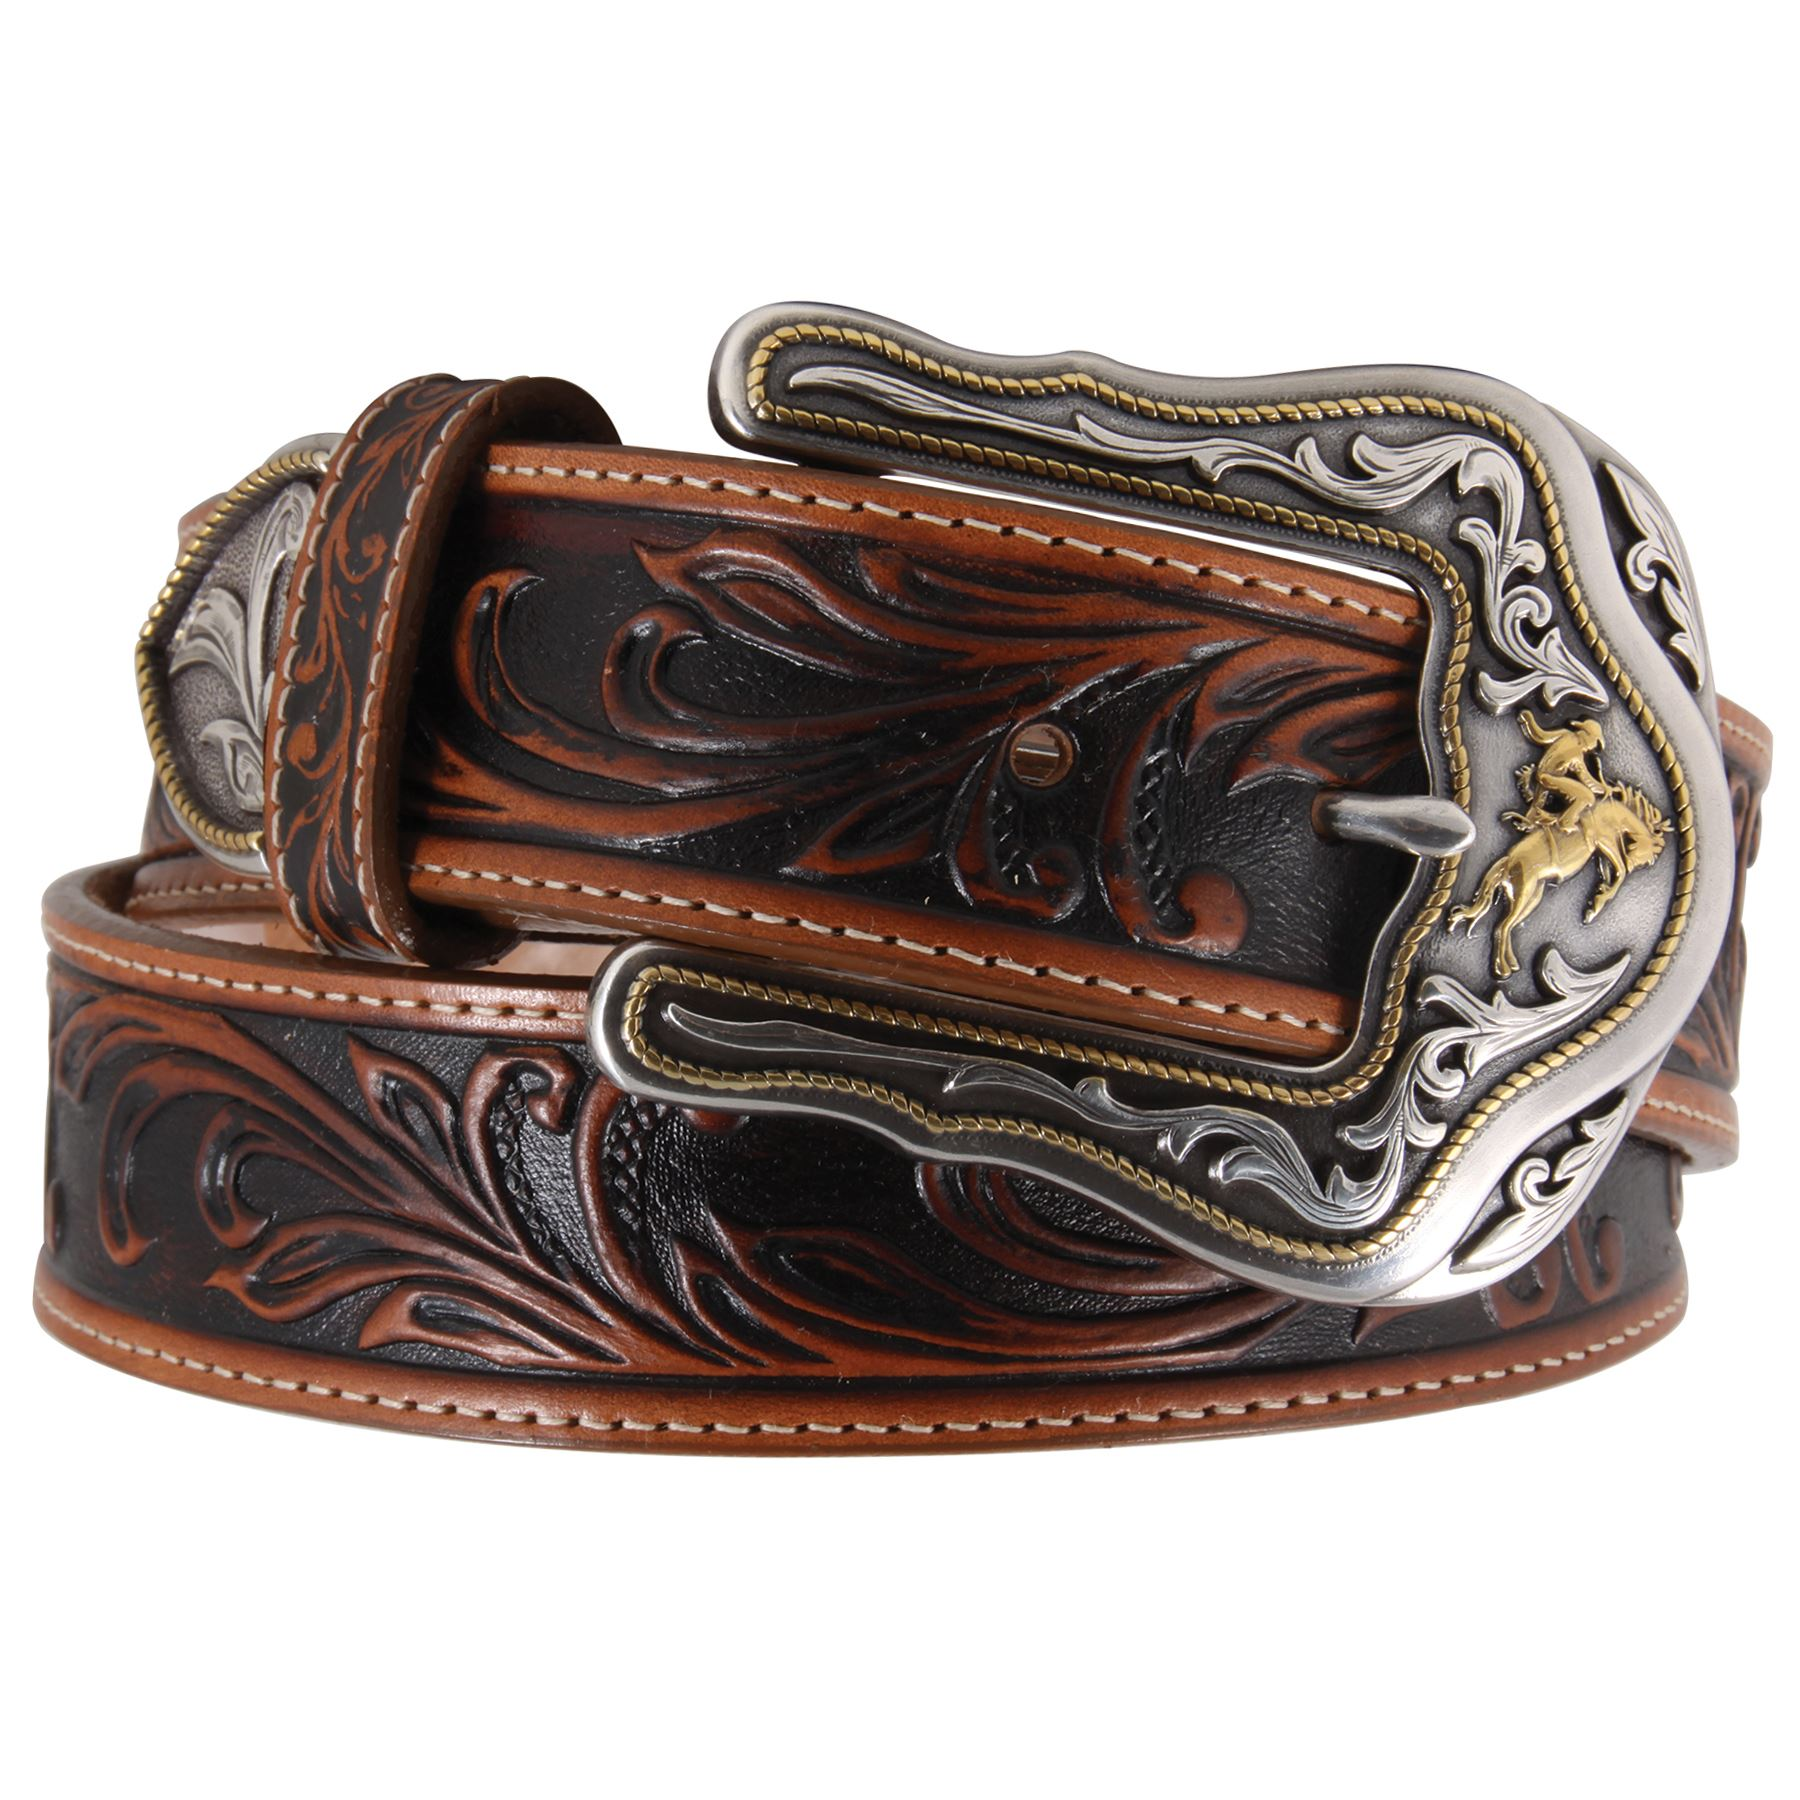 Tony Lama Westerly Ride Belt